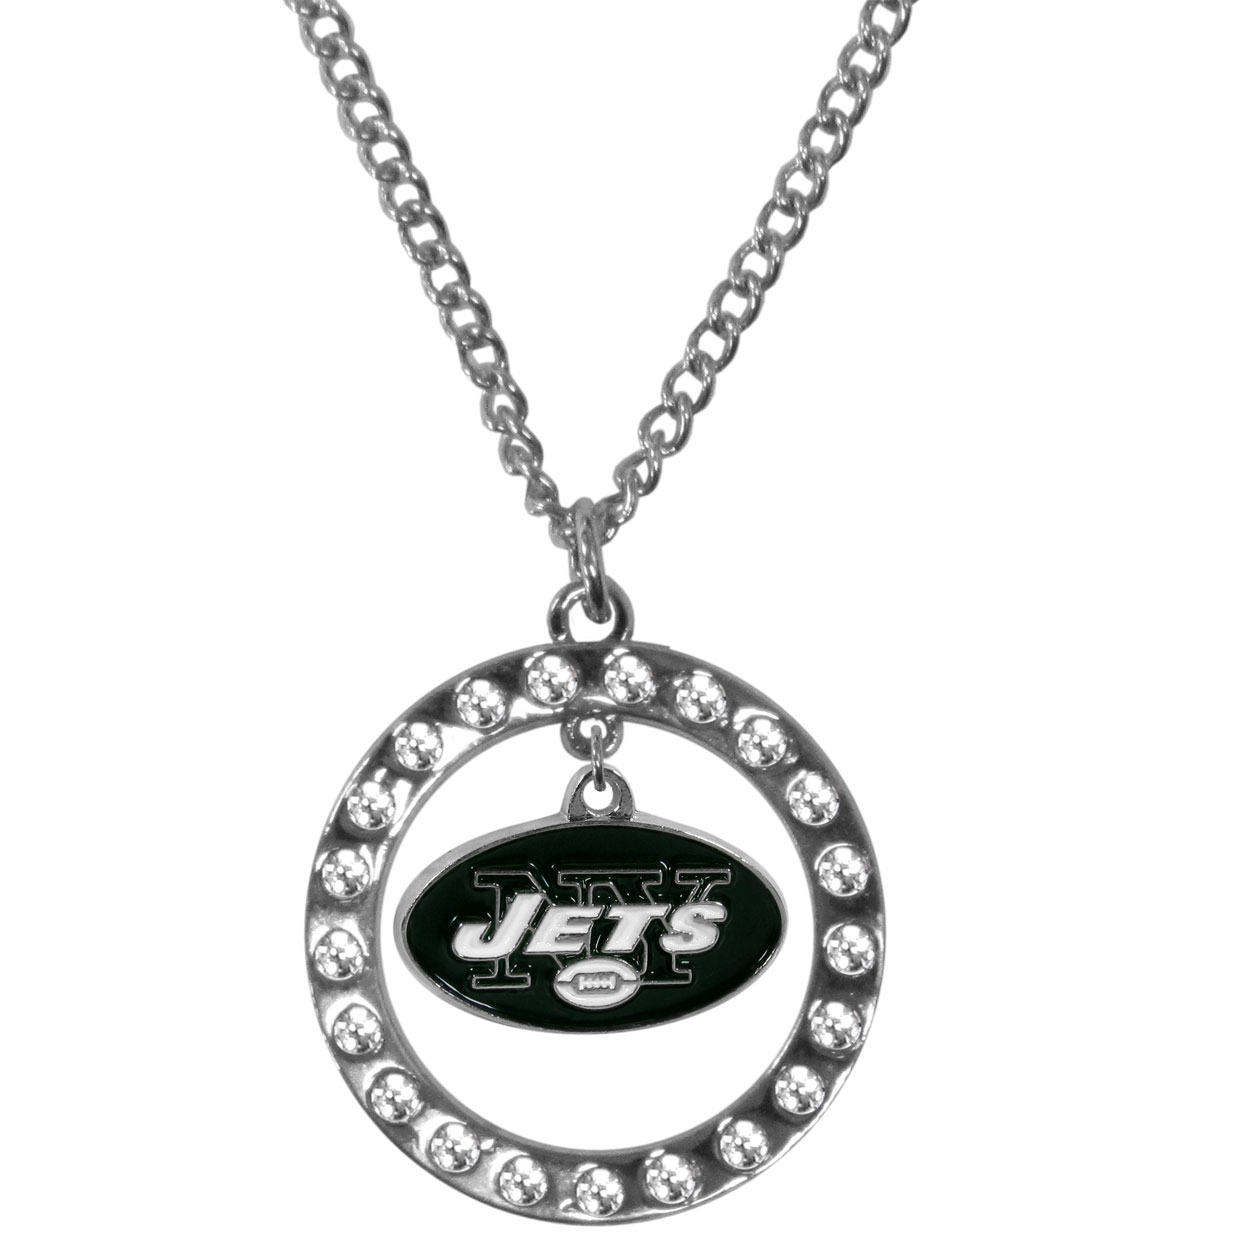 New York Jets Rhinestone Hoop Necklaces - Our New York Jets rhinestone hoop necklace comes on an 18 inch chain and features a hoop covered in rhinestones with a high polish chrome finish and a cast and enameled team charm dangling in the center.